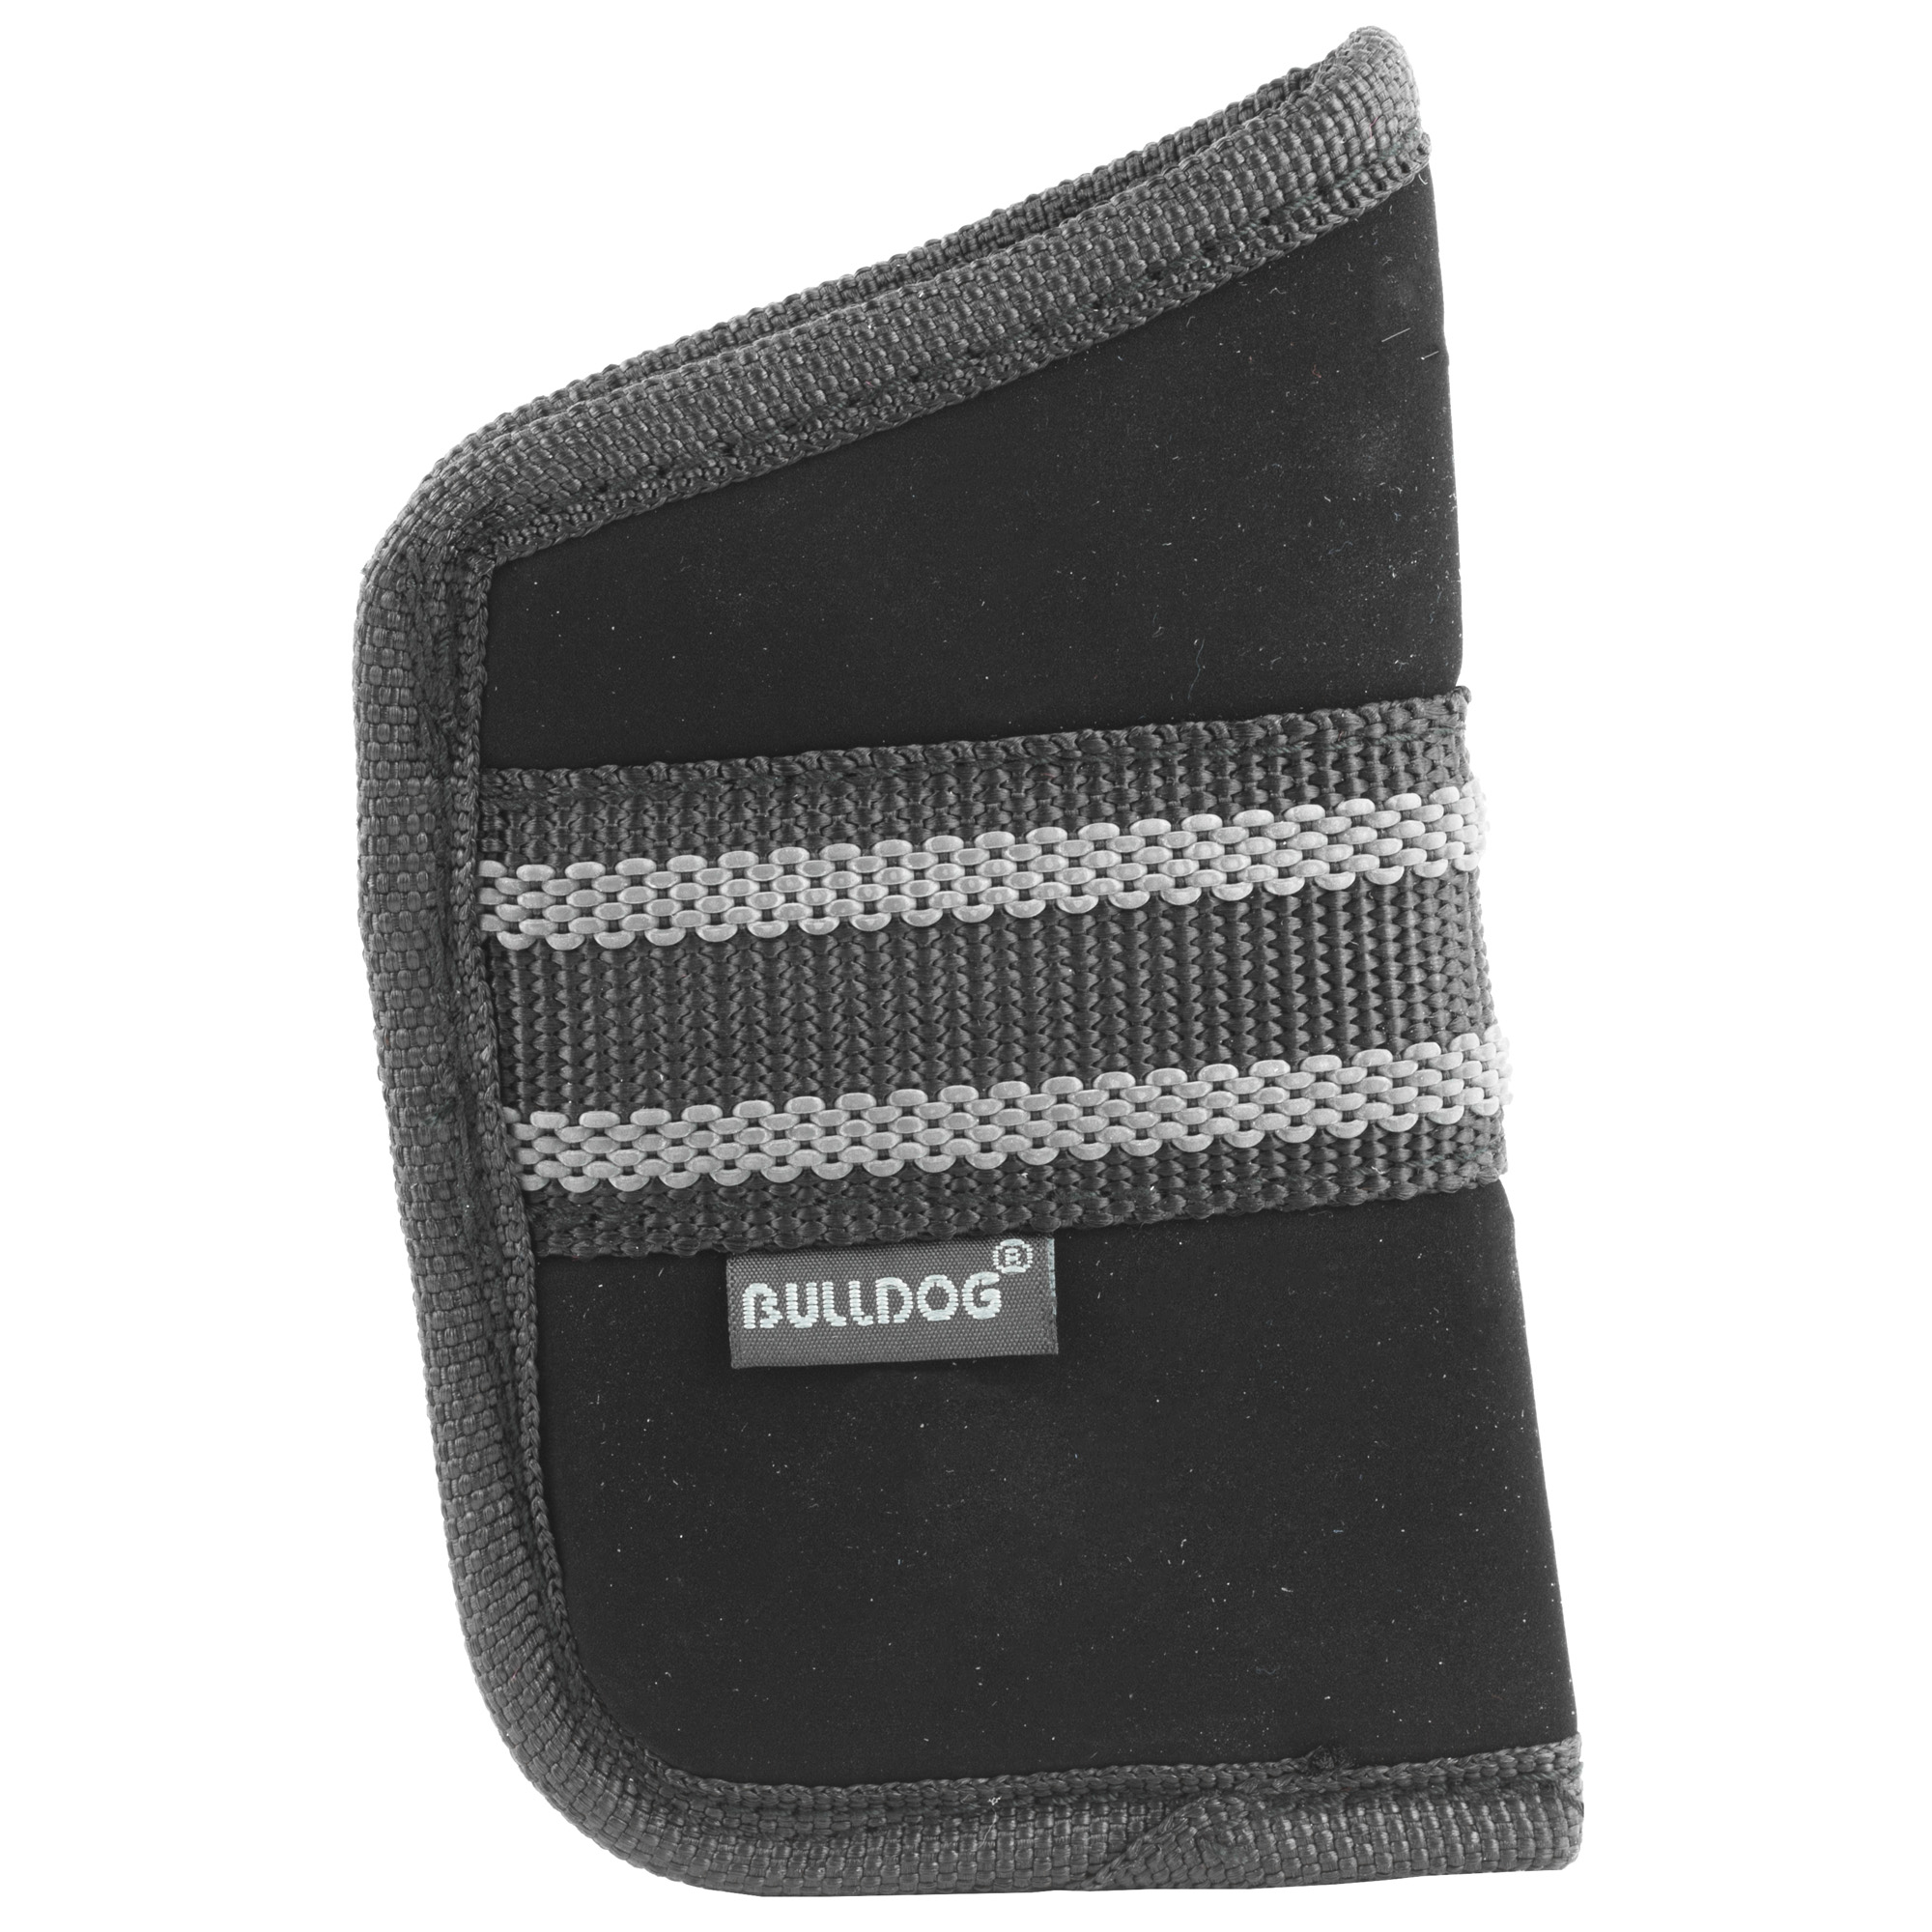 Fused Padding Helps Conceal The Pistol Outline While Protecting The User's Leg From The Sharp Edges Of The Pistol. Non-Slip Band Helps Keep The Holster In Place In The Pocket When Pistol Is Drawn. Size medium.